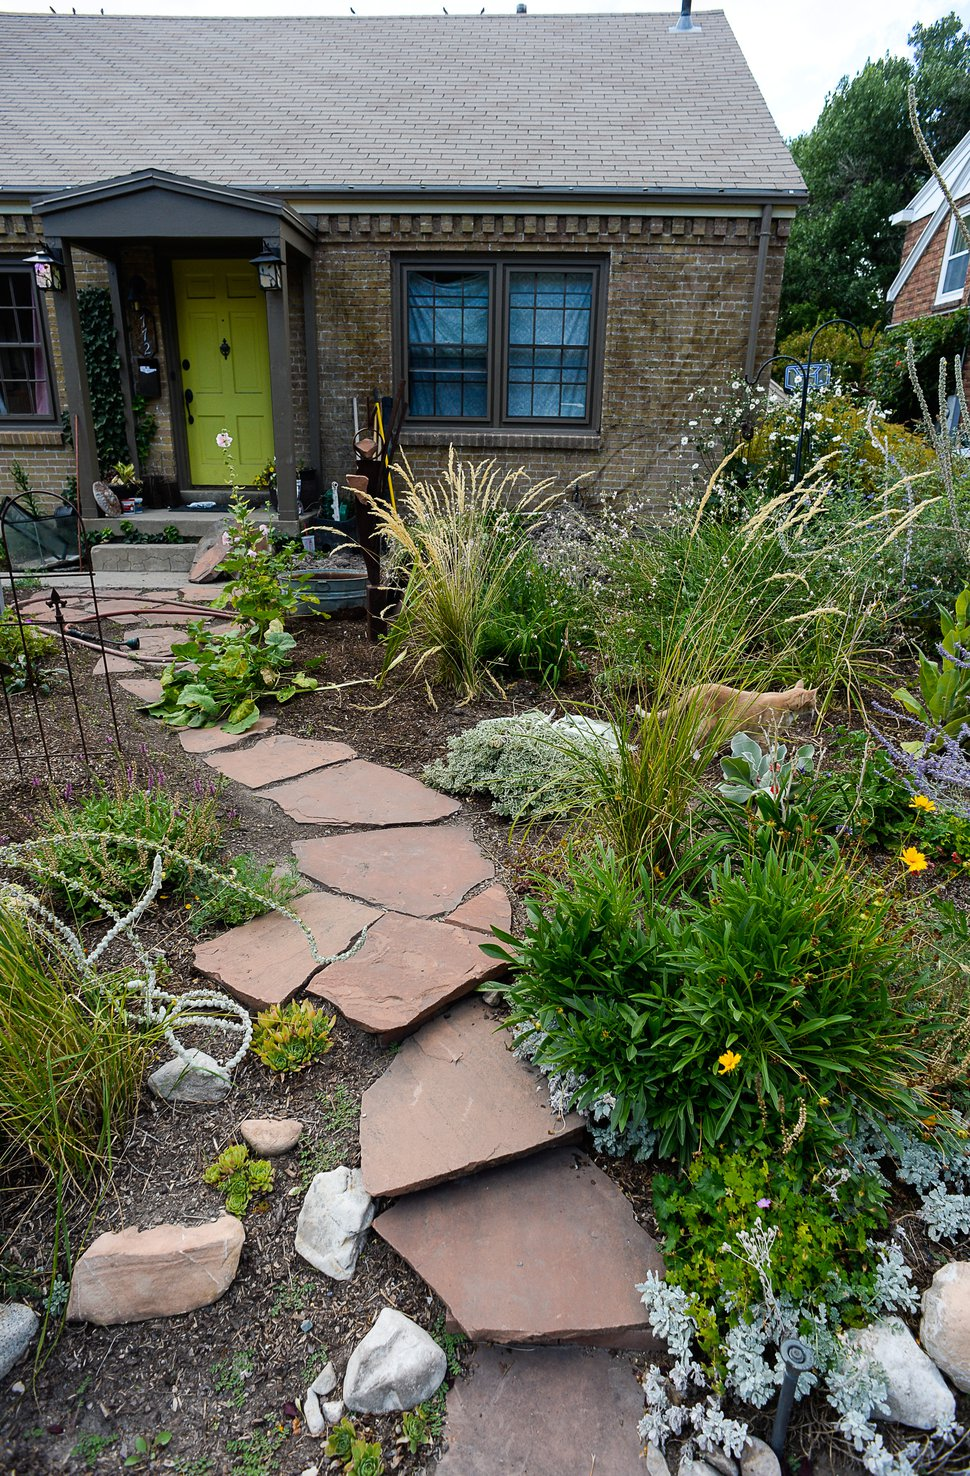 (Francisco Kjolseth | Tribune file photo) A xeriscaped yard in Salt Lake City, featuring rocks and drought-resistant plants to reduce water usage.